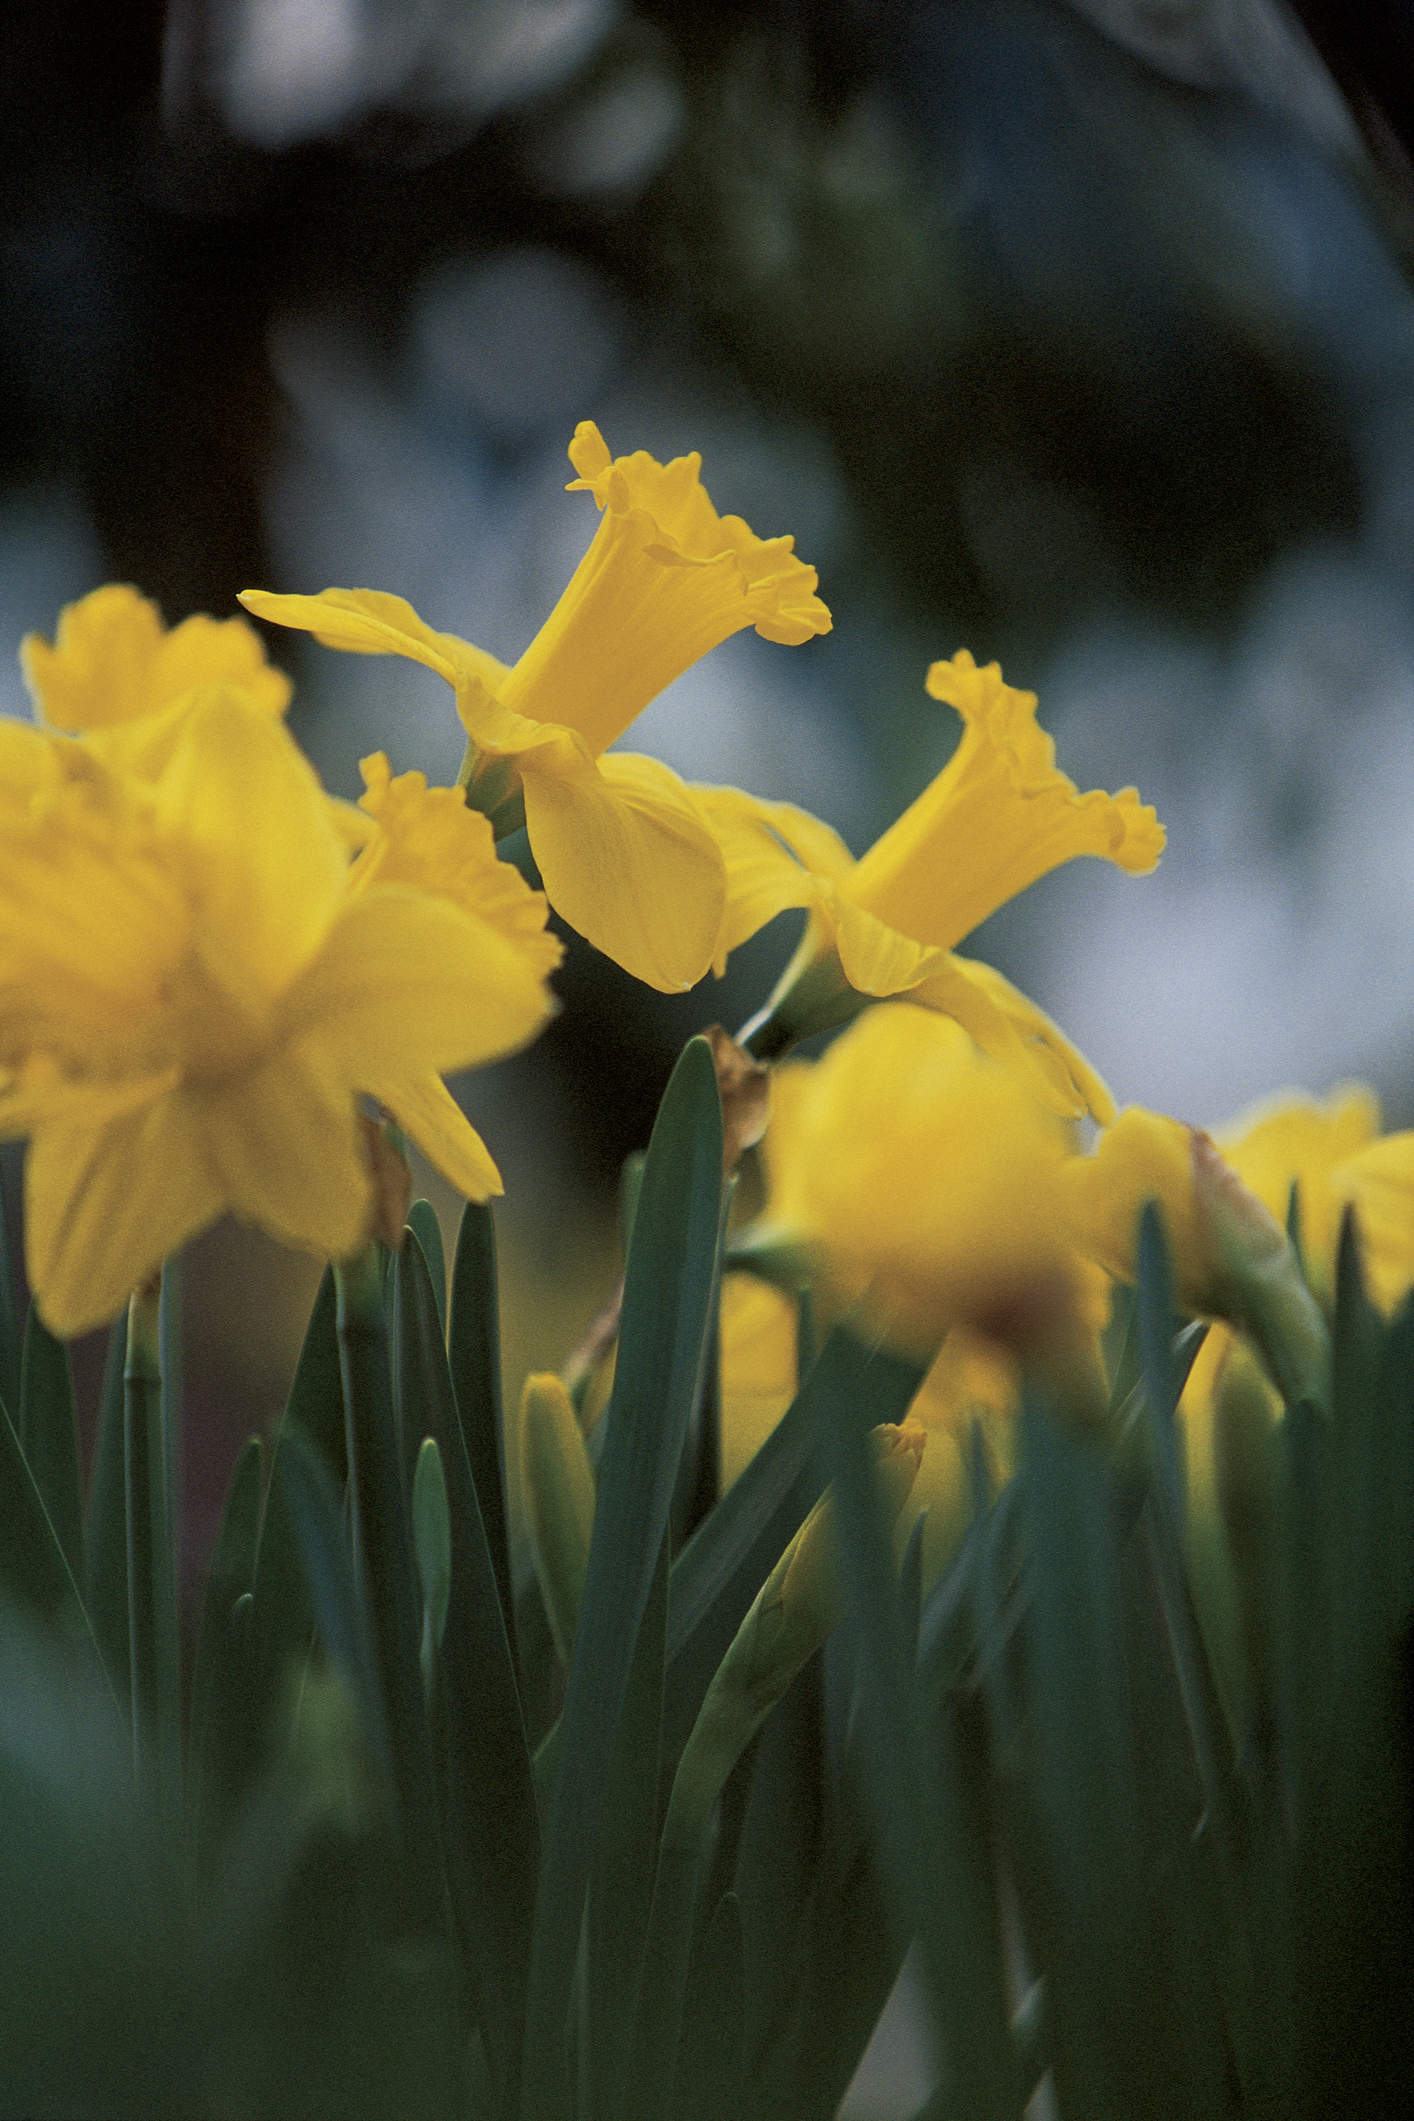 A close up image of a group of yellow daffodil flowers in field.